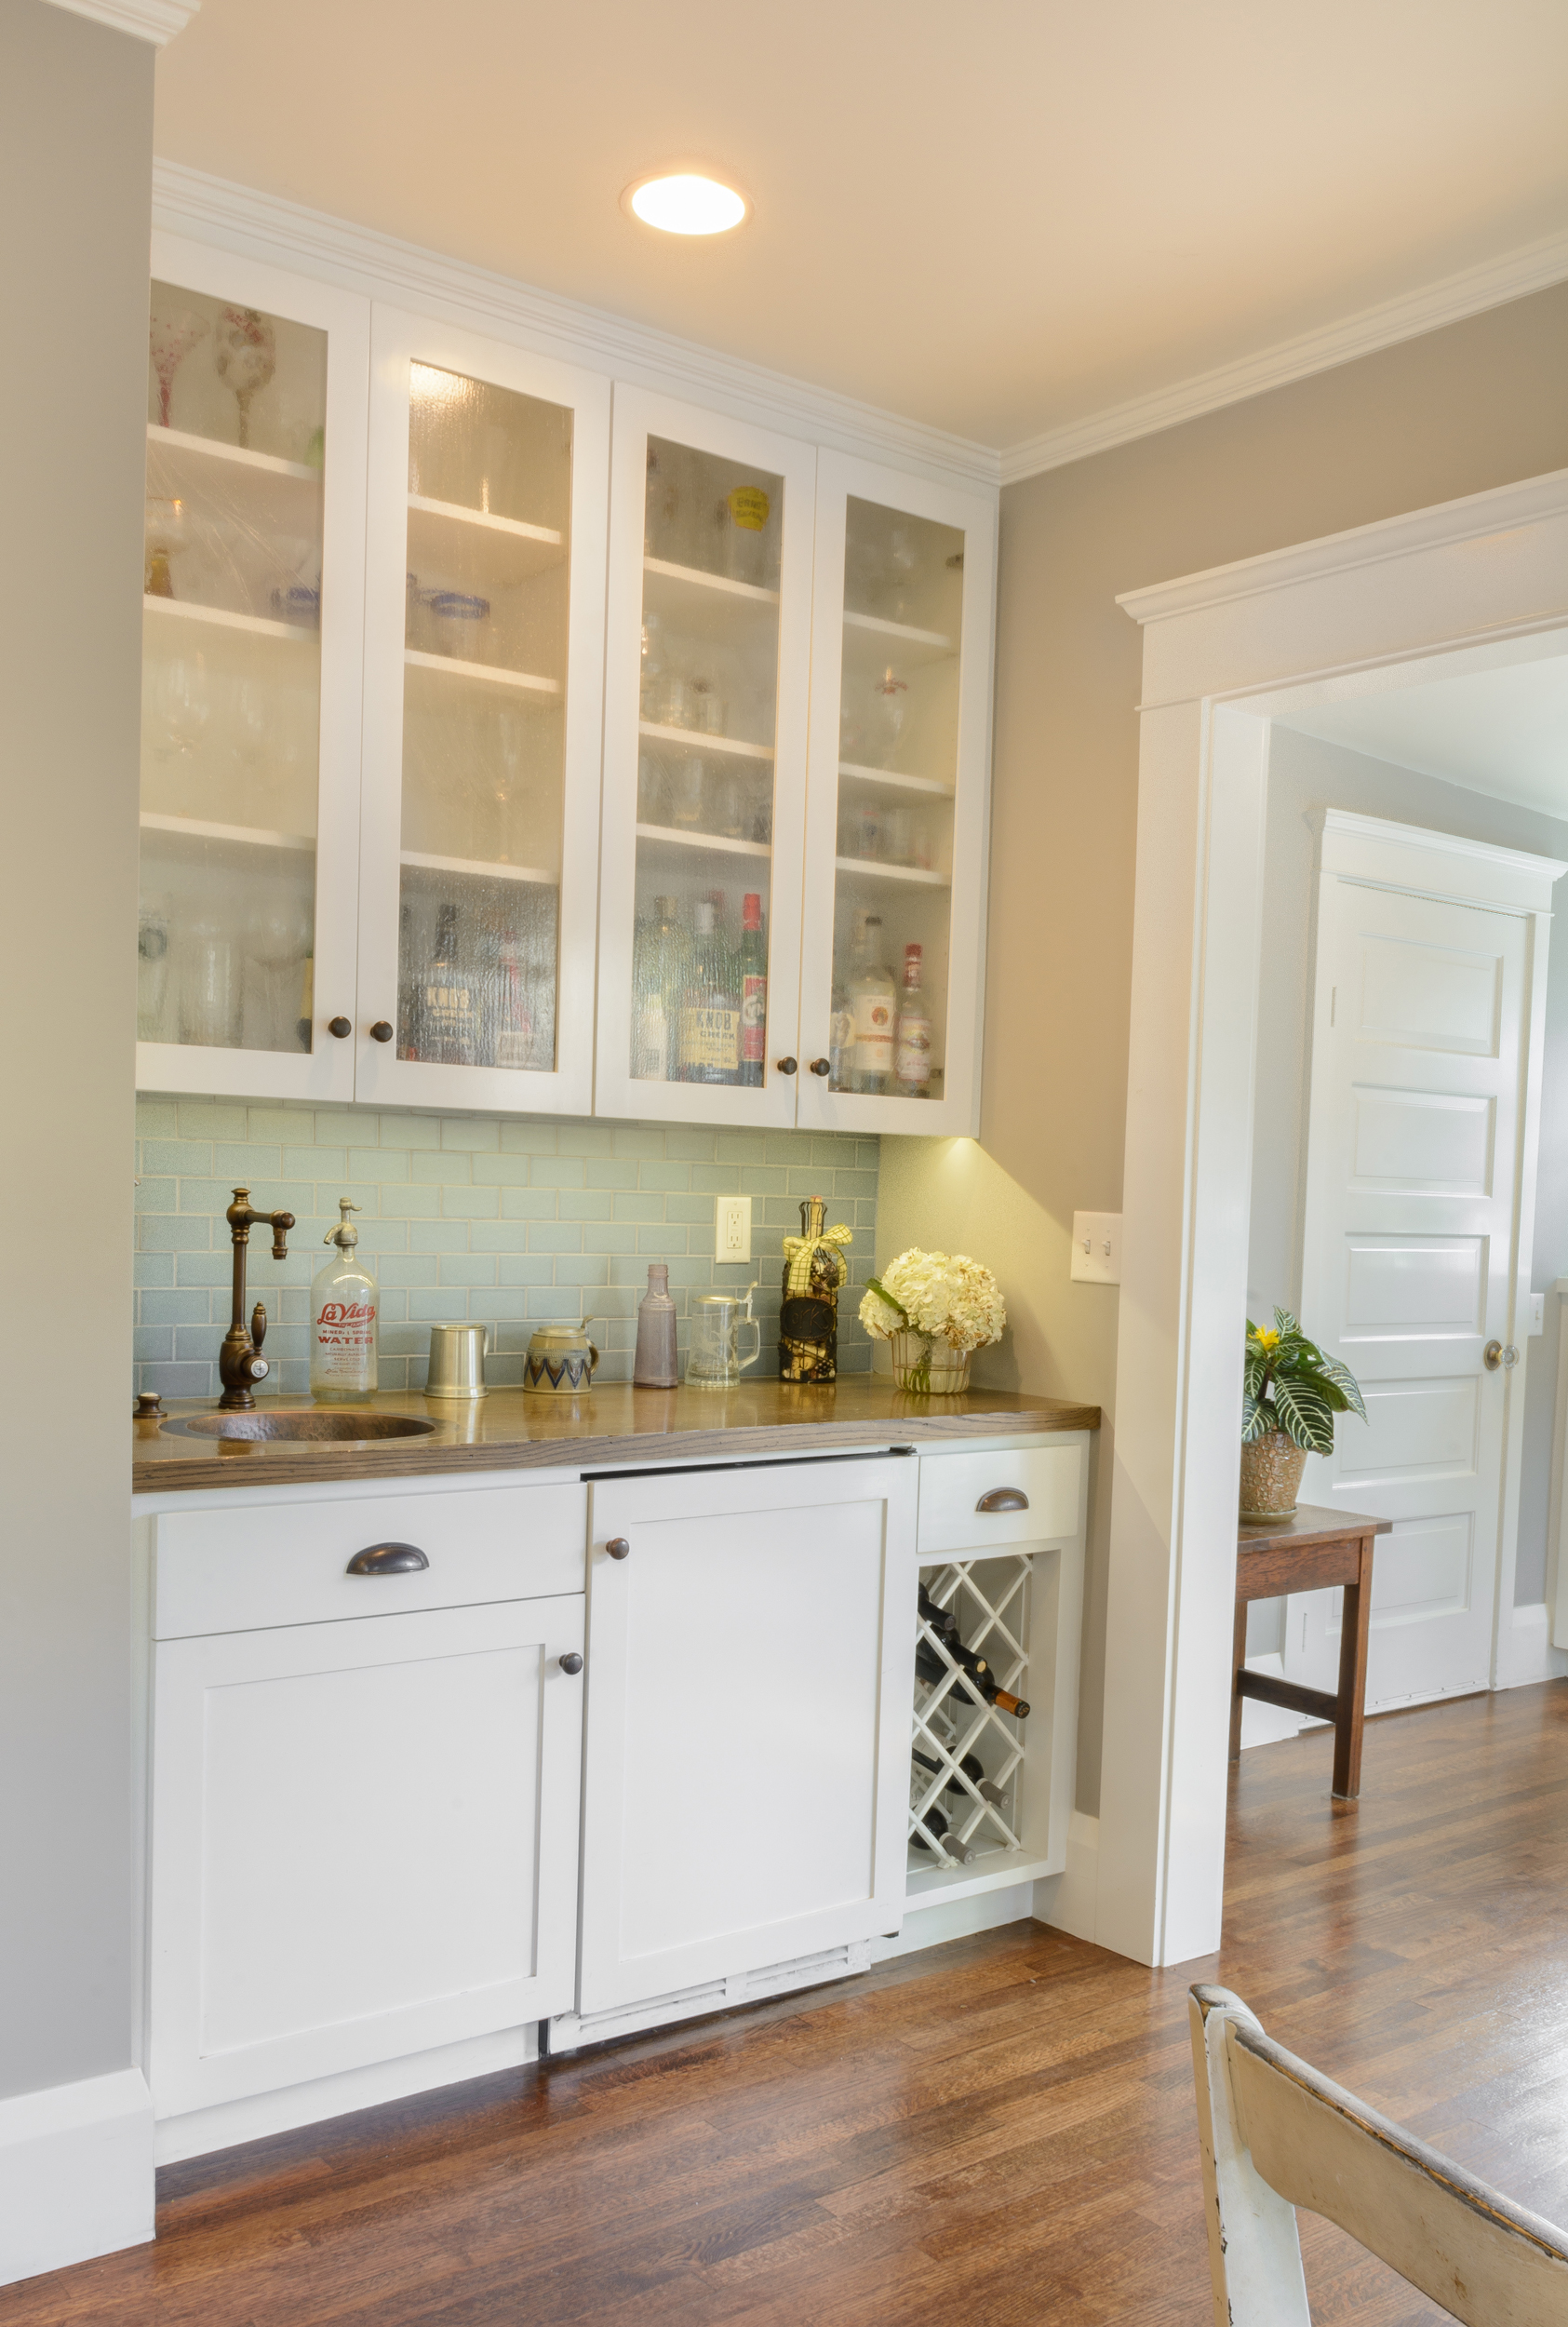 Kitchen bar: white cabinets with glass doors